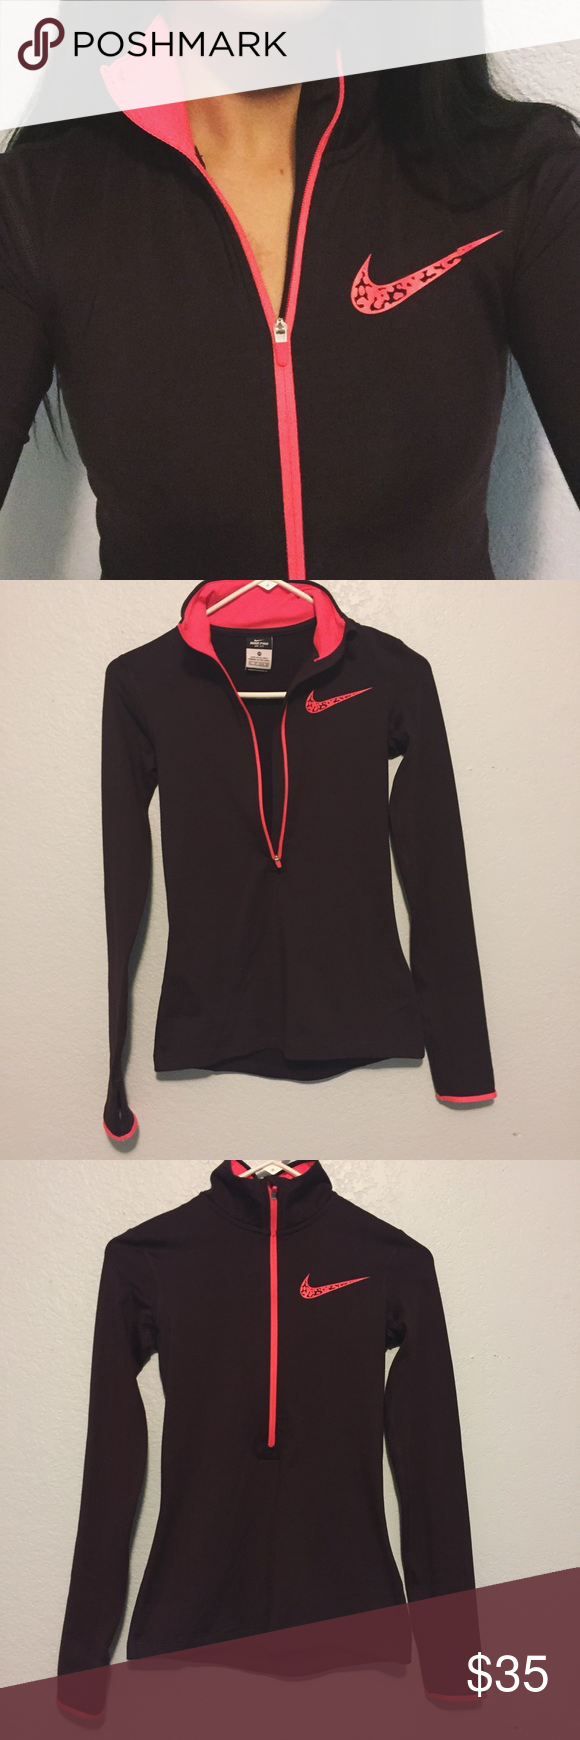 Nike Pro Maroon Athletic Zip Up Jacket Nike Pro Dark Maroon Zip Up Athletic Jacket with an orange/pink printed Nike logo. It is also orange/pink on the inside of the collar and on the edge of the sleeves. Size: XS Retails for: $65 Used but in a great condition. Nike Tops Sweatshirts & Hoodies